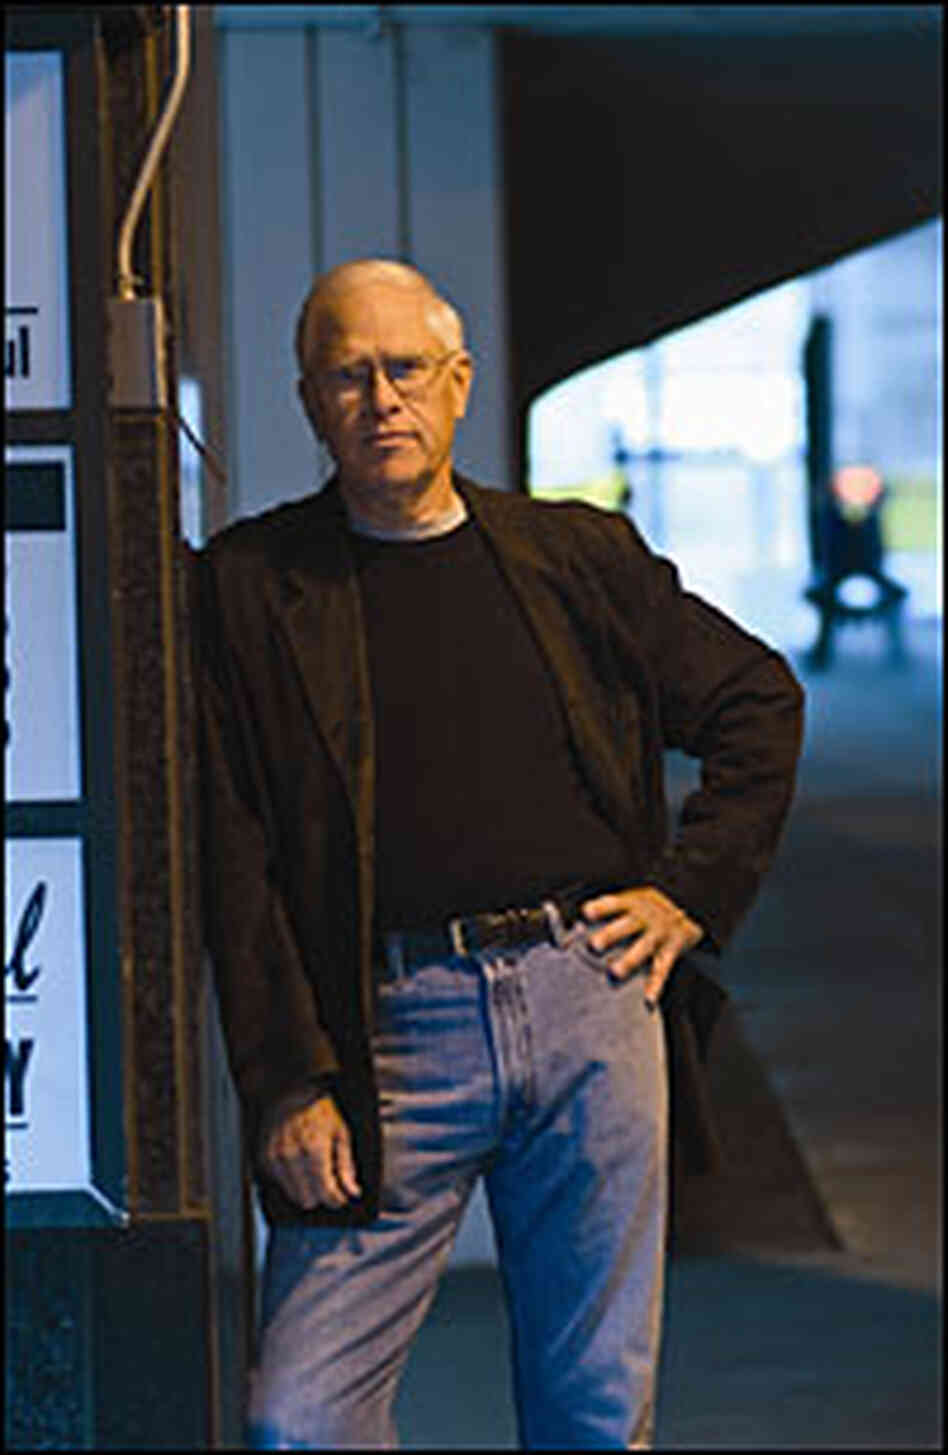 Author John Sandford